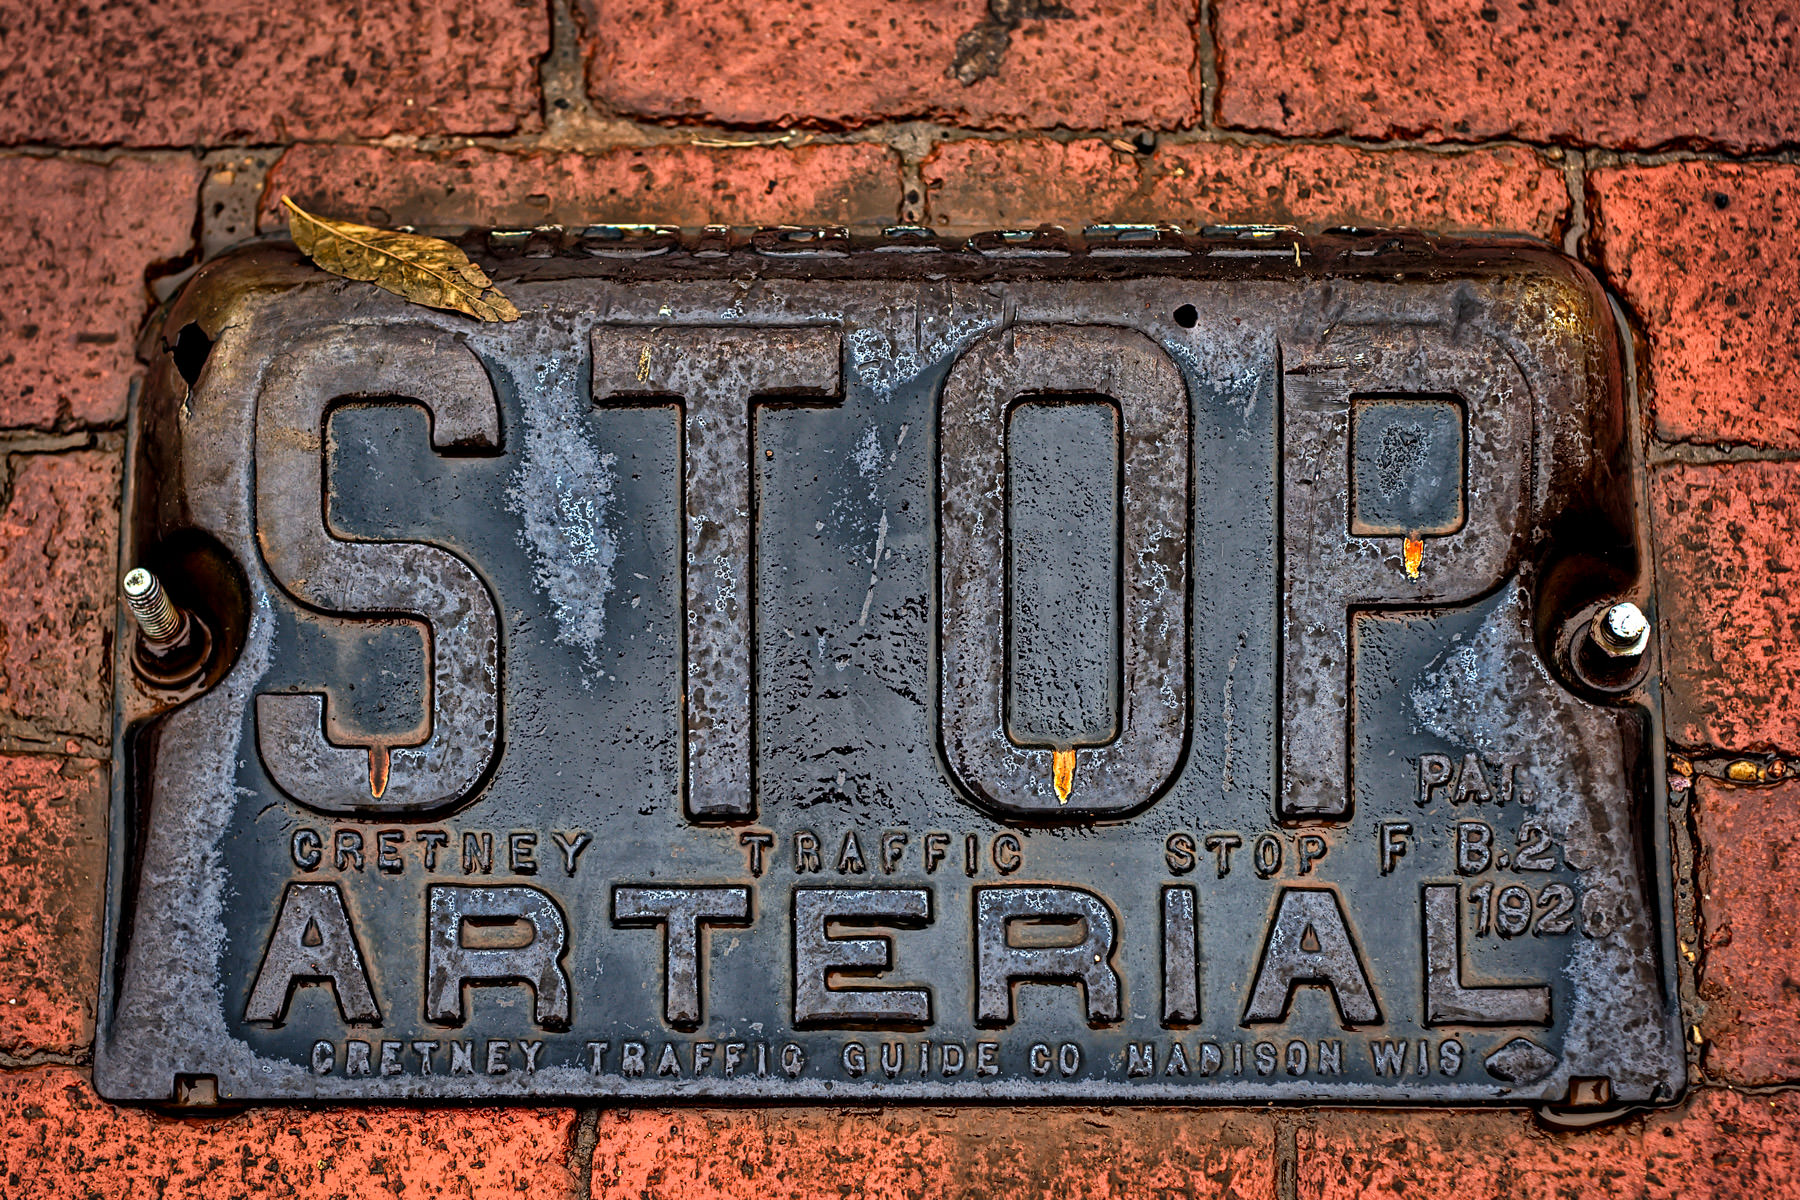 A stop sign marker embedded in the brick streets of Jefferson, Texas.